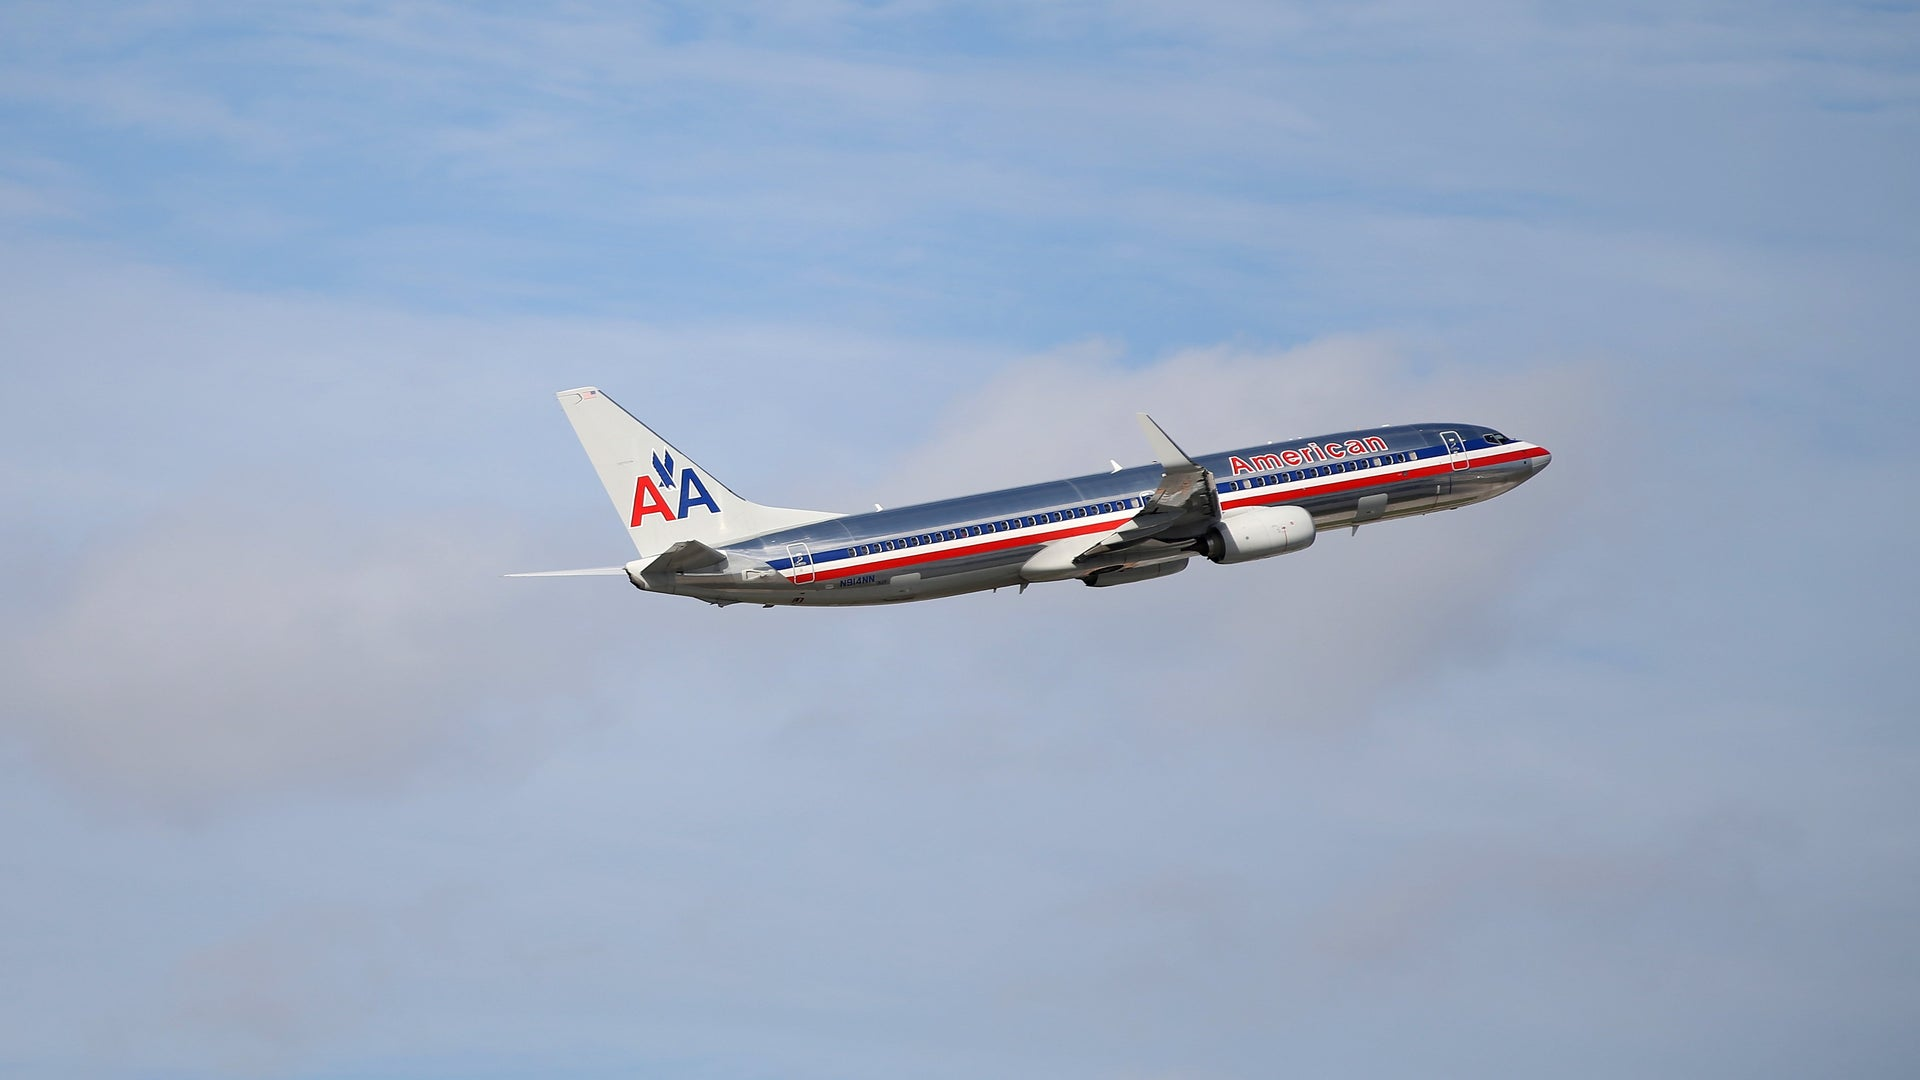 American Airlines Suspends Employee After Video Shows Altercation With Mom